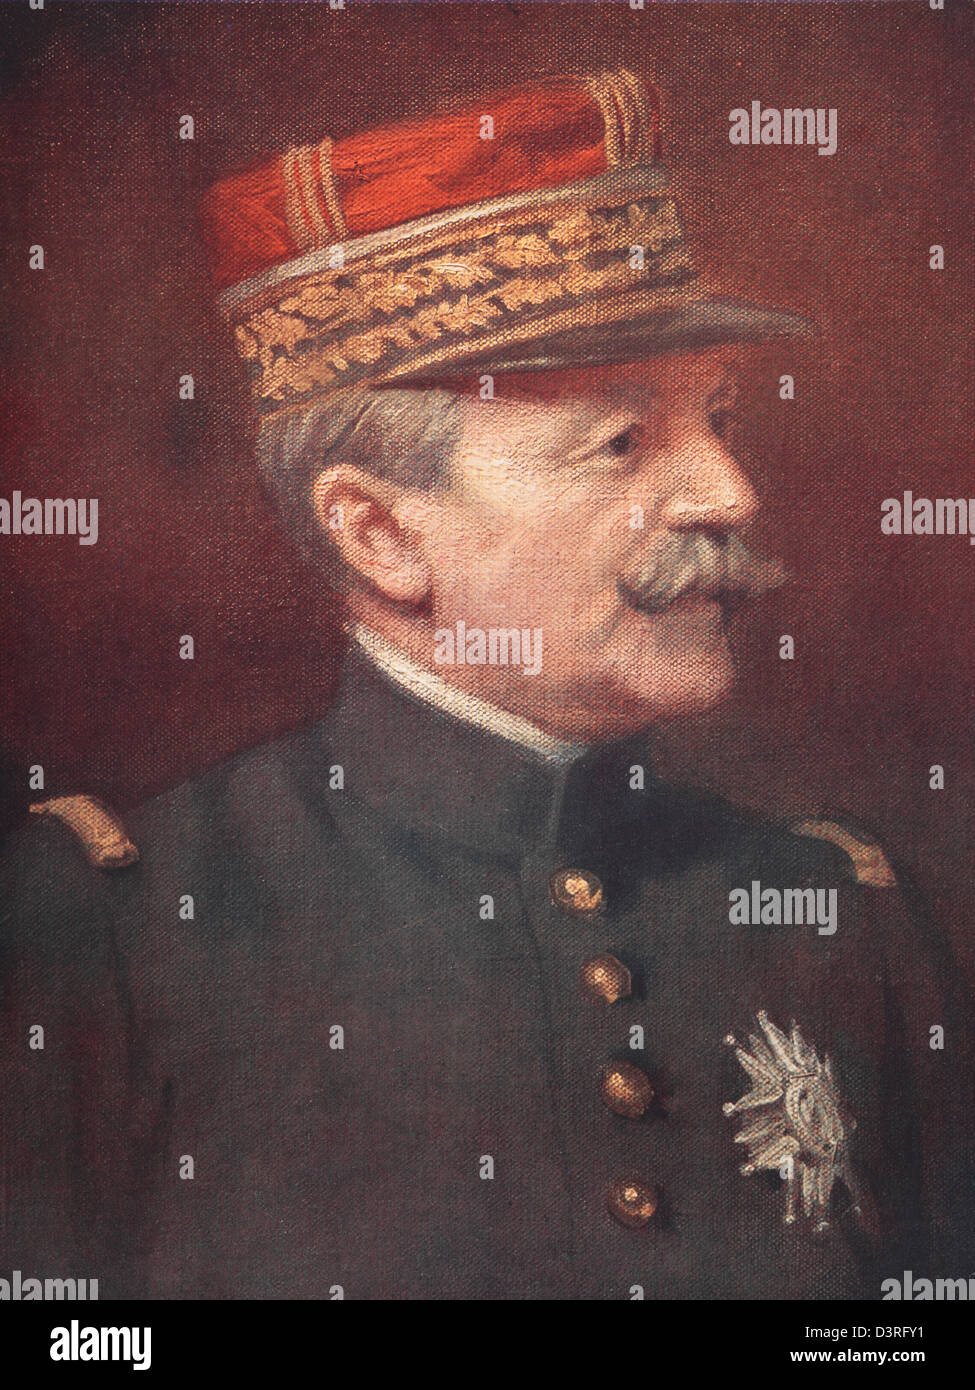 bb263f4d095 Fernand de Langle de Cary - French General in the First World War - Stock  Image